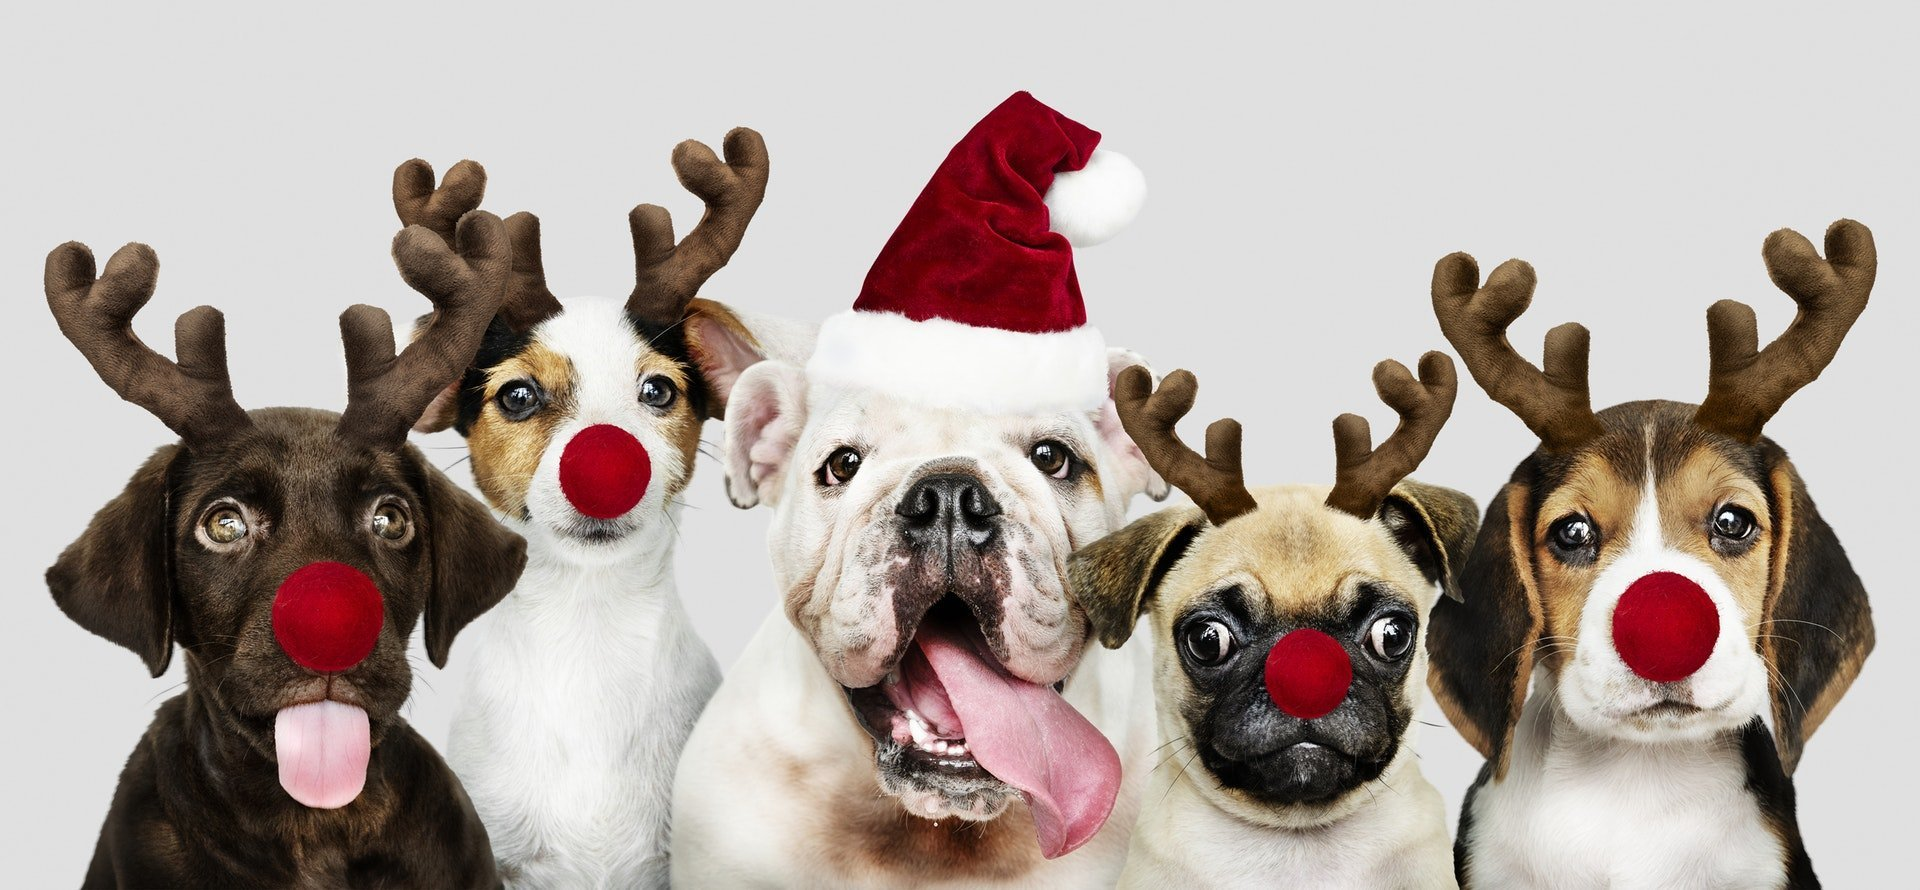 Cute puppies ready for Christmas!